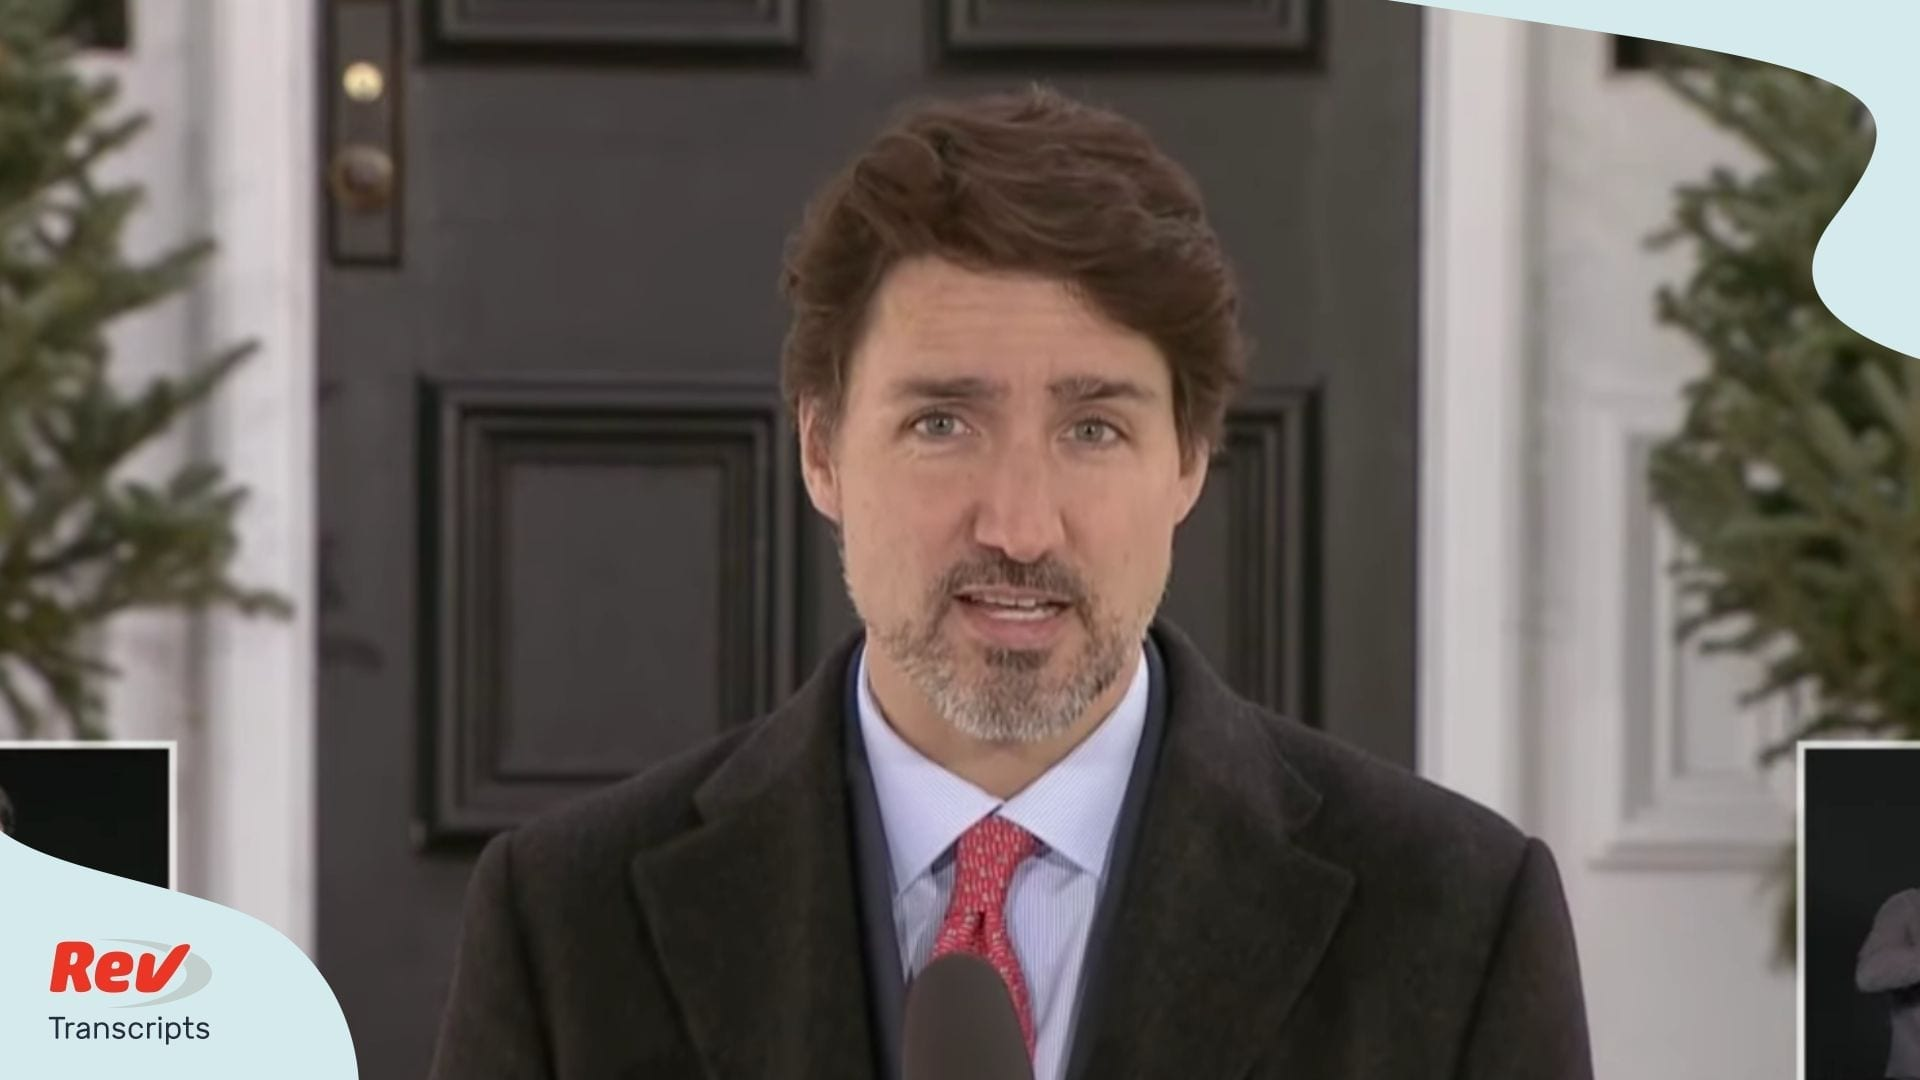 Justin Trudeau Coronavirus Briefing March 25